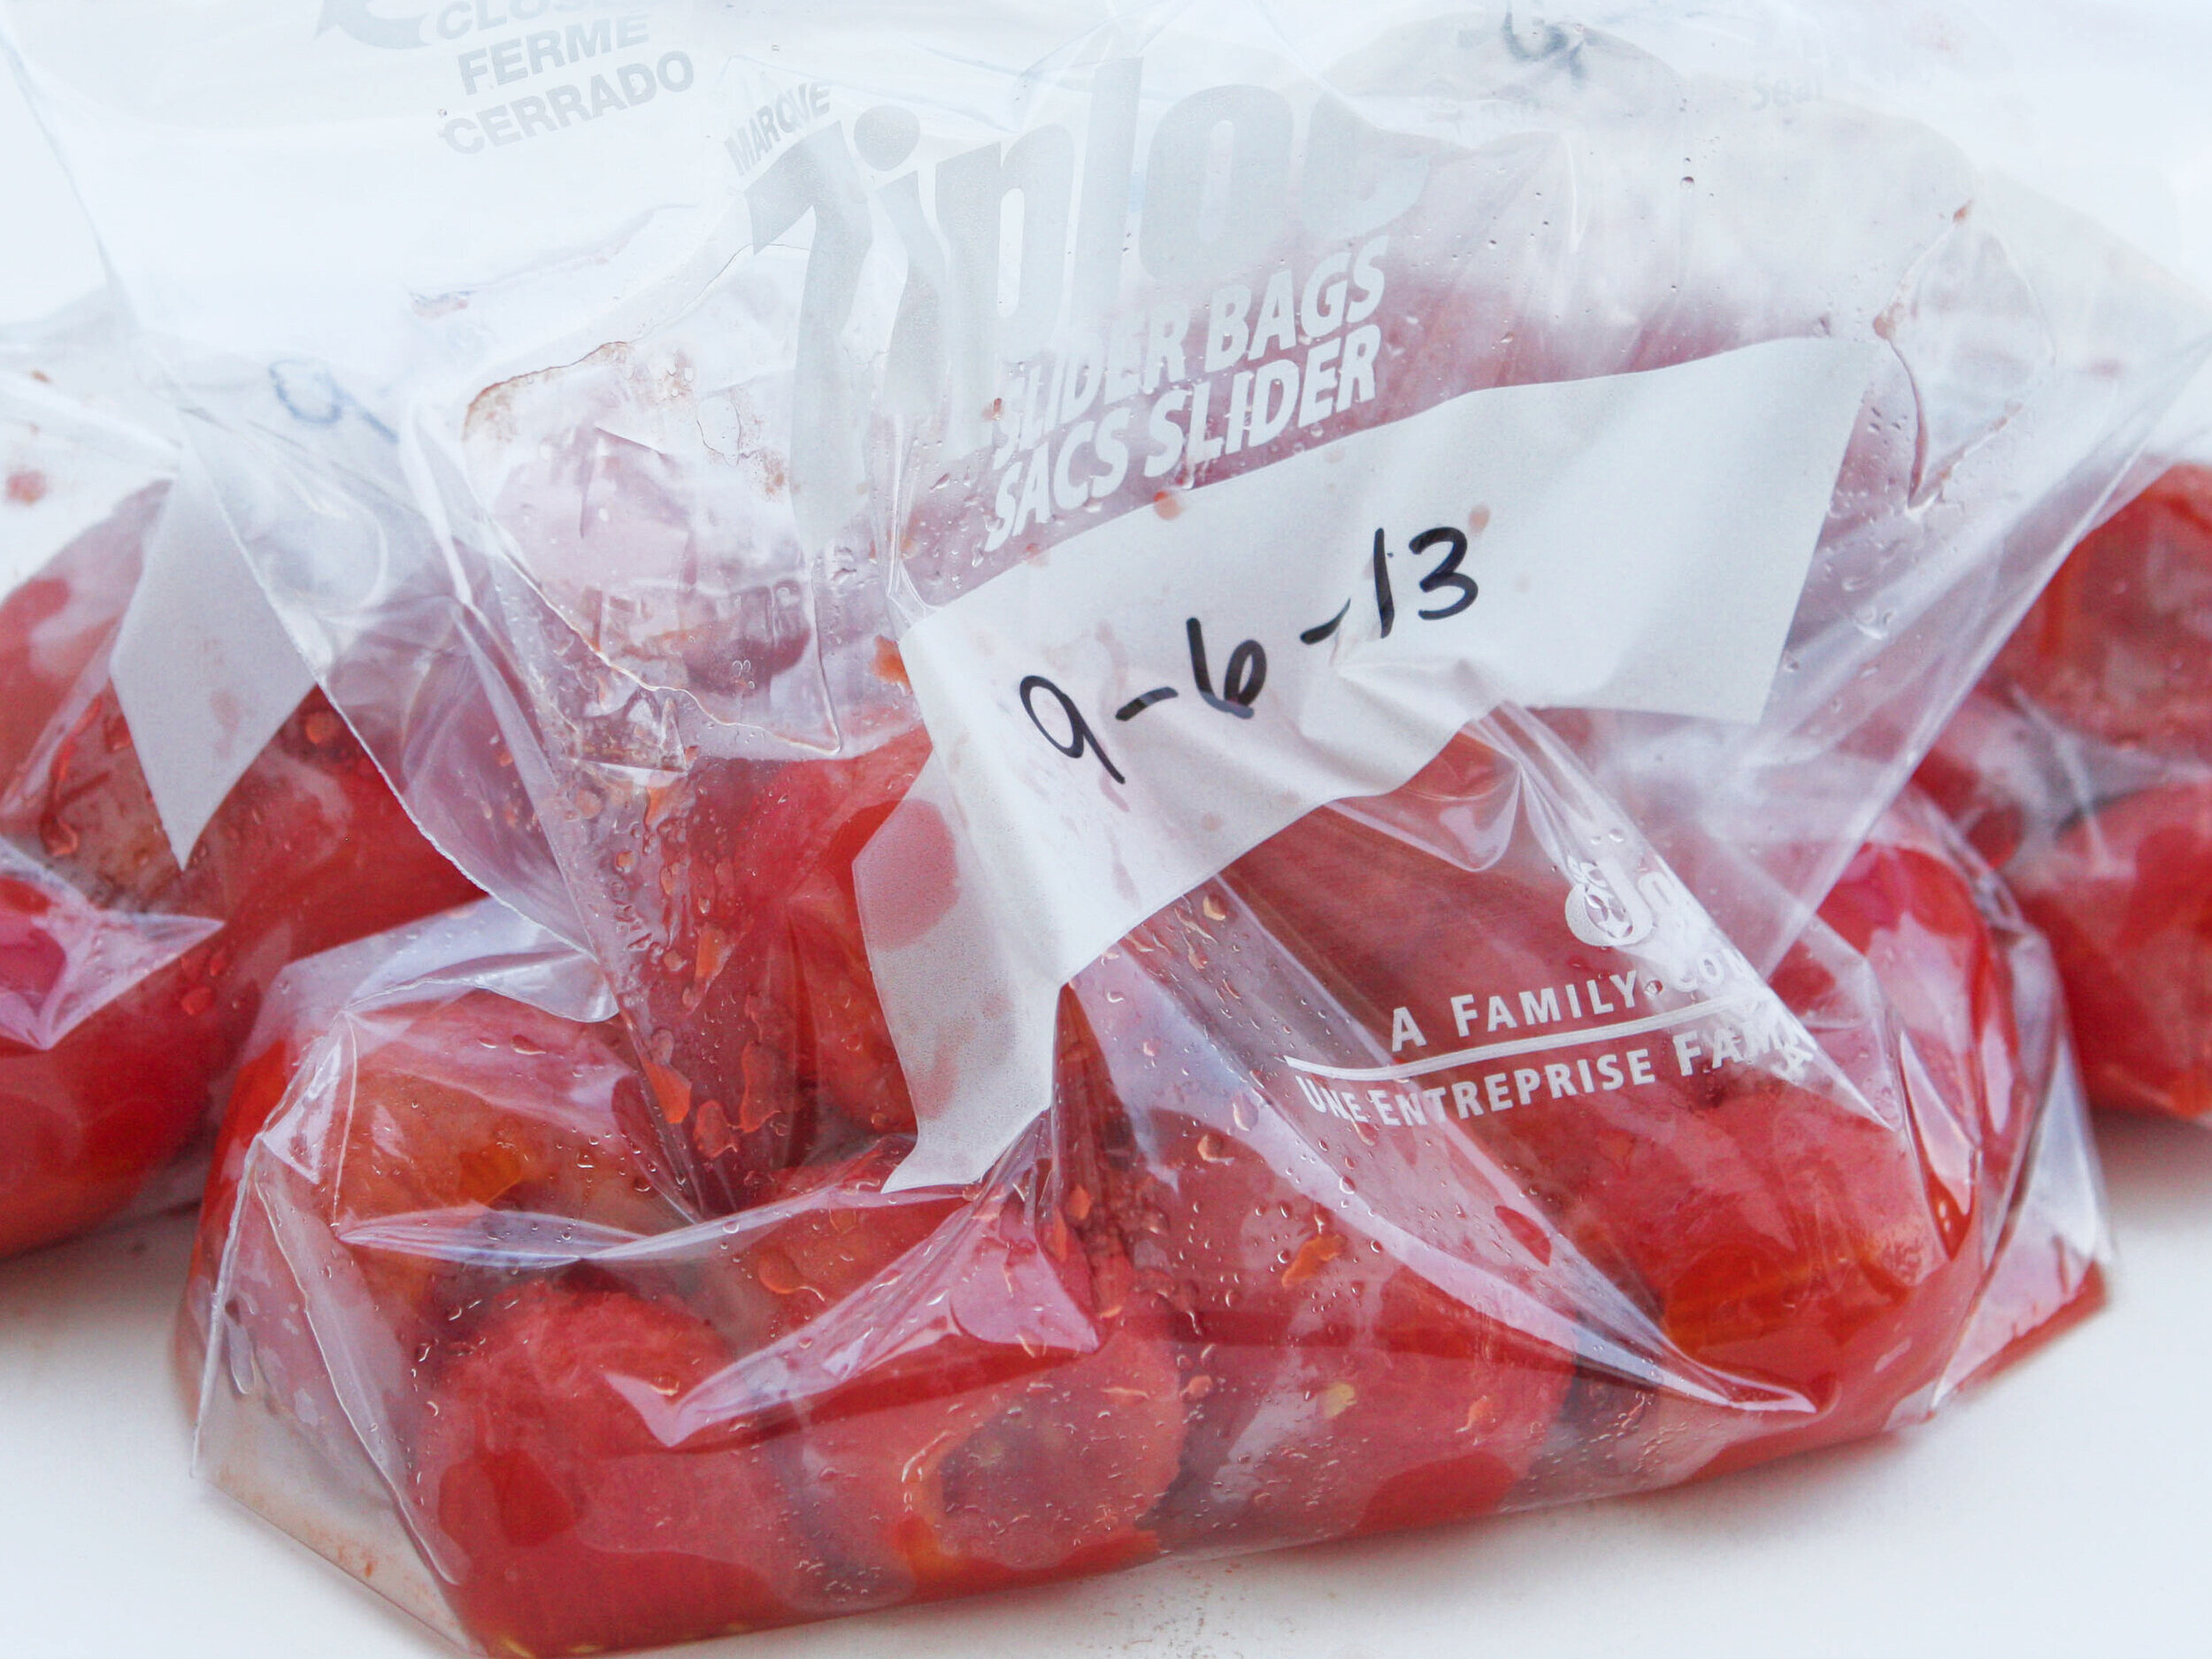 Roma tomatoes in ziploc bags ready for freezing